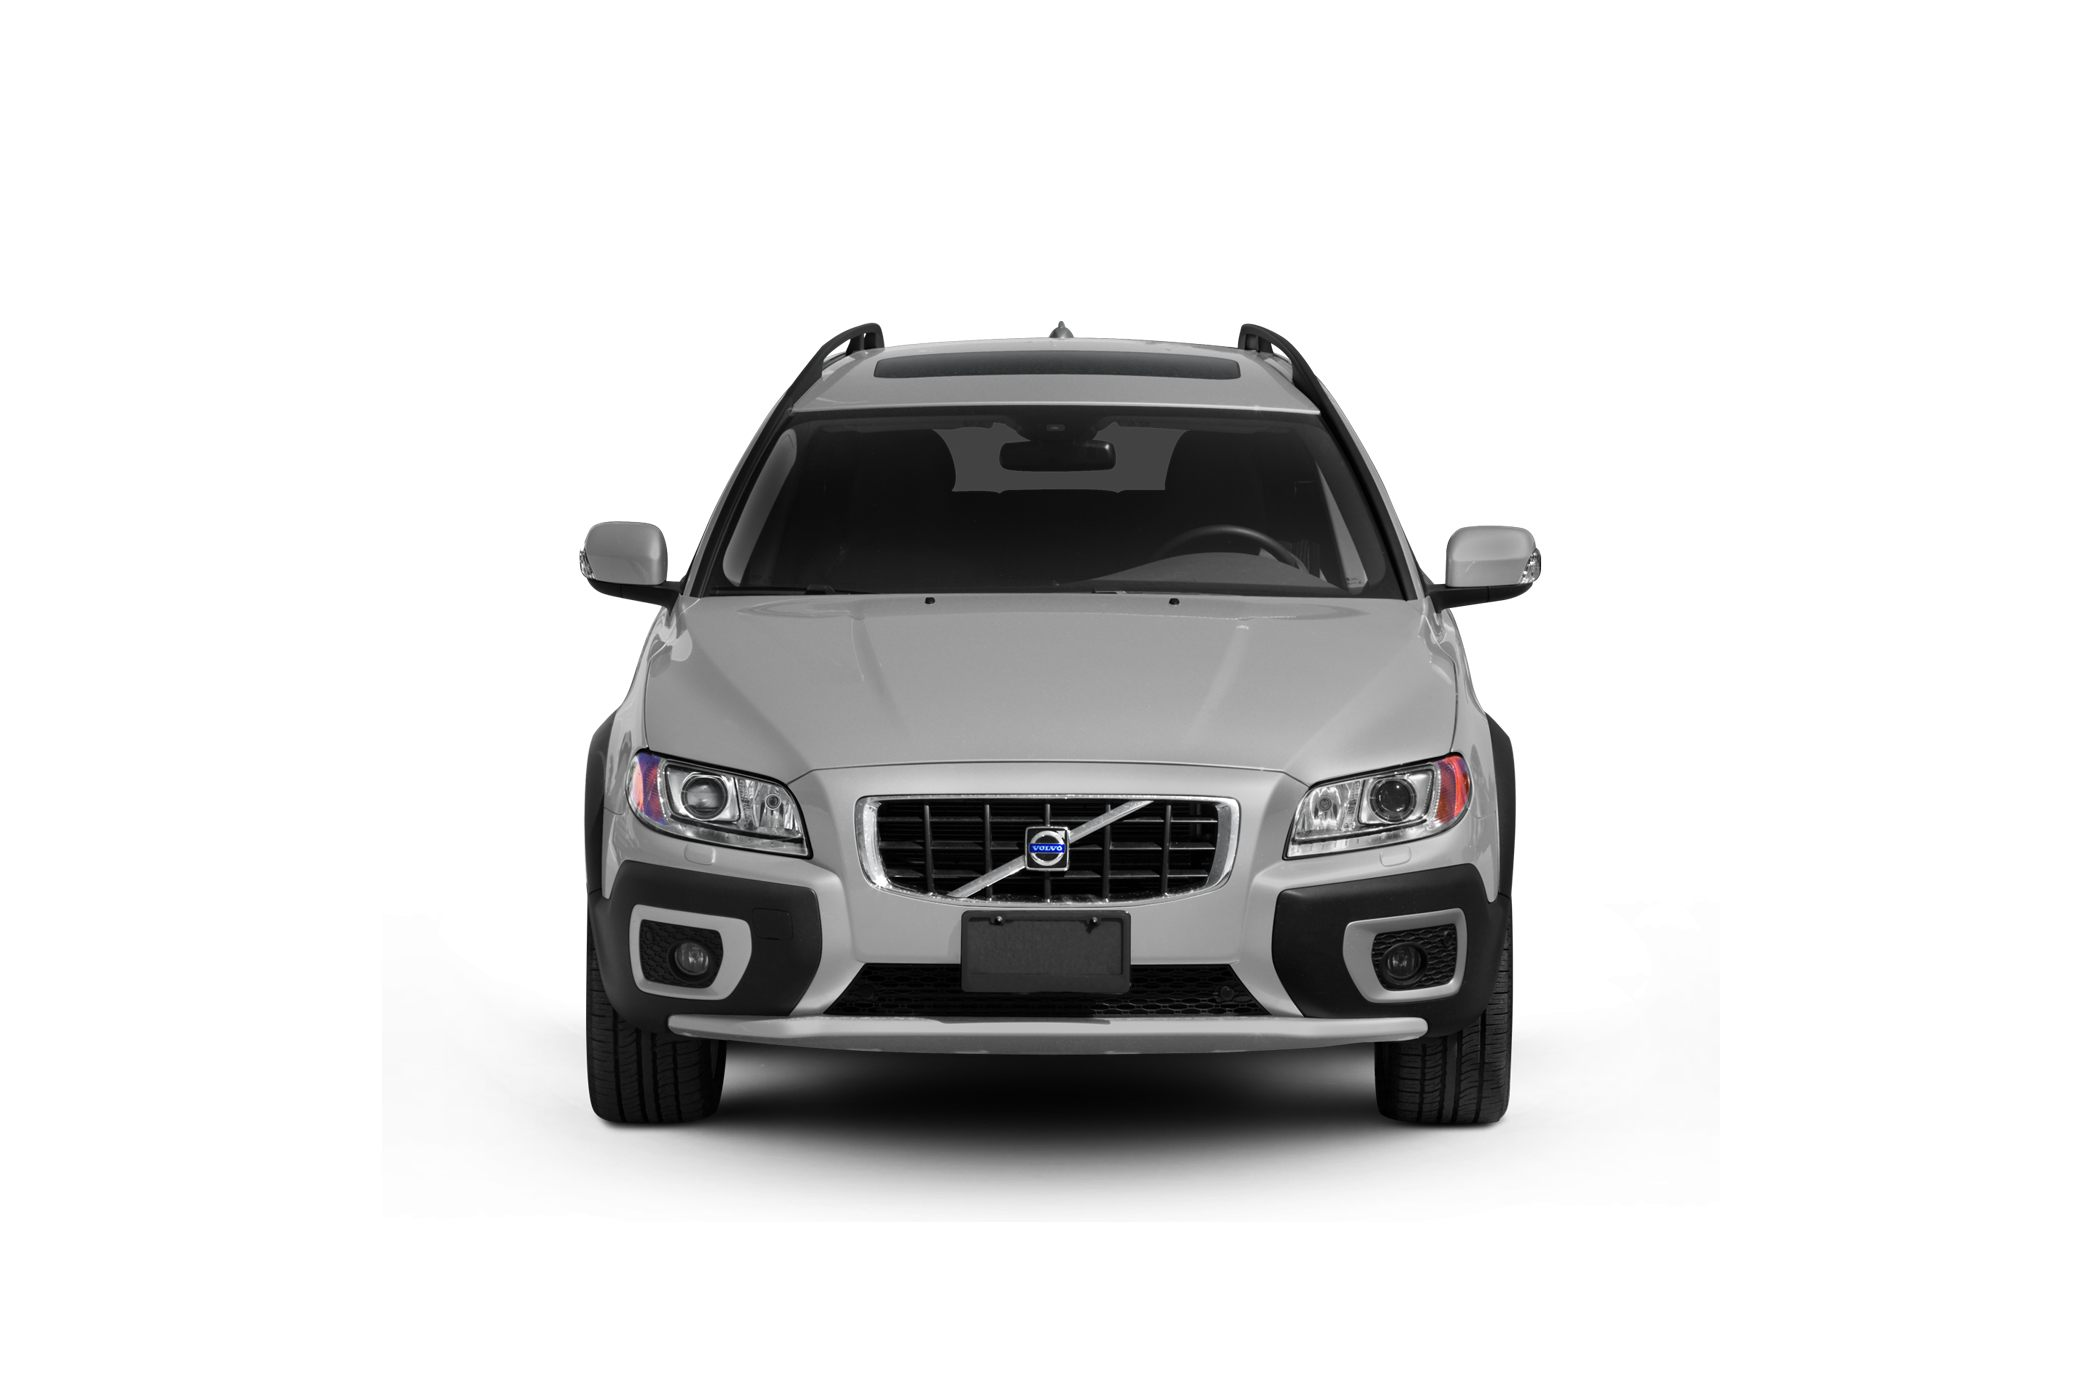 2010 Volvo XC70 Specs, Safety Rating & MPG - CarsDirect